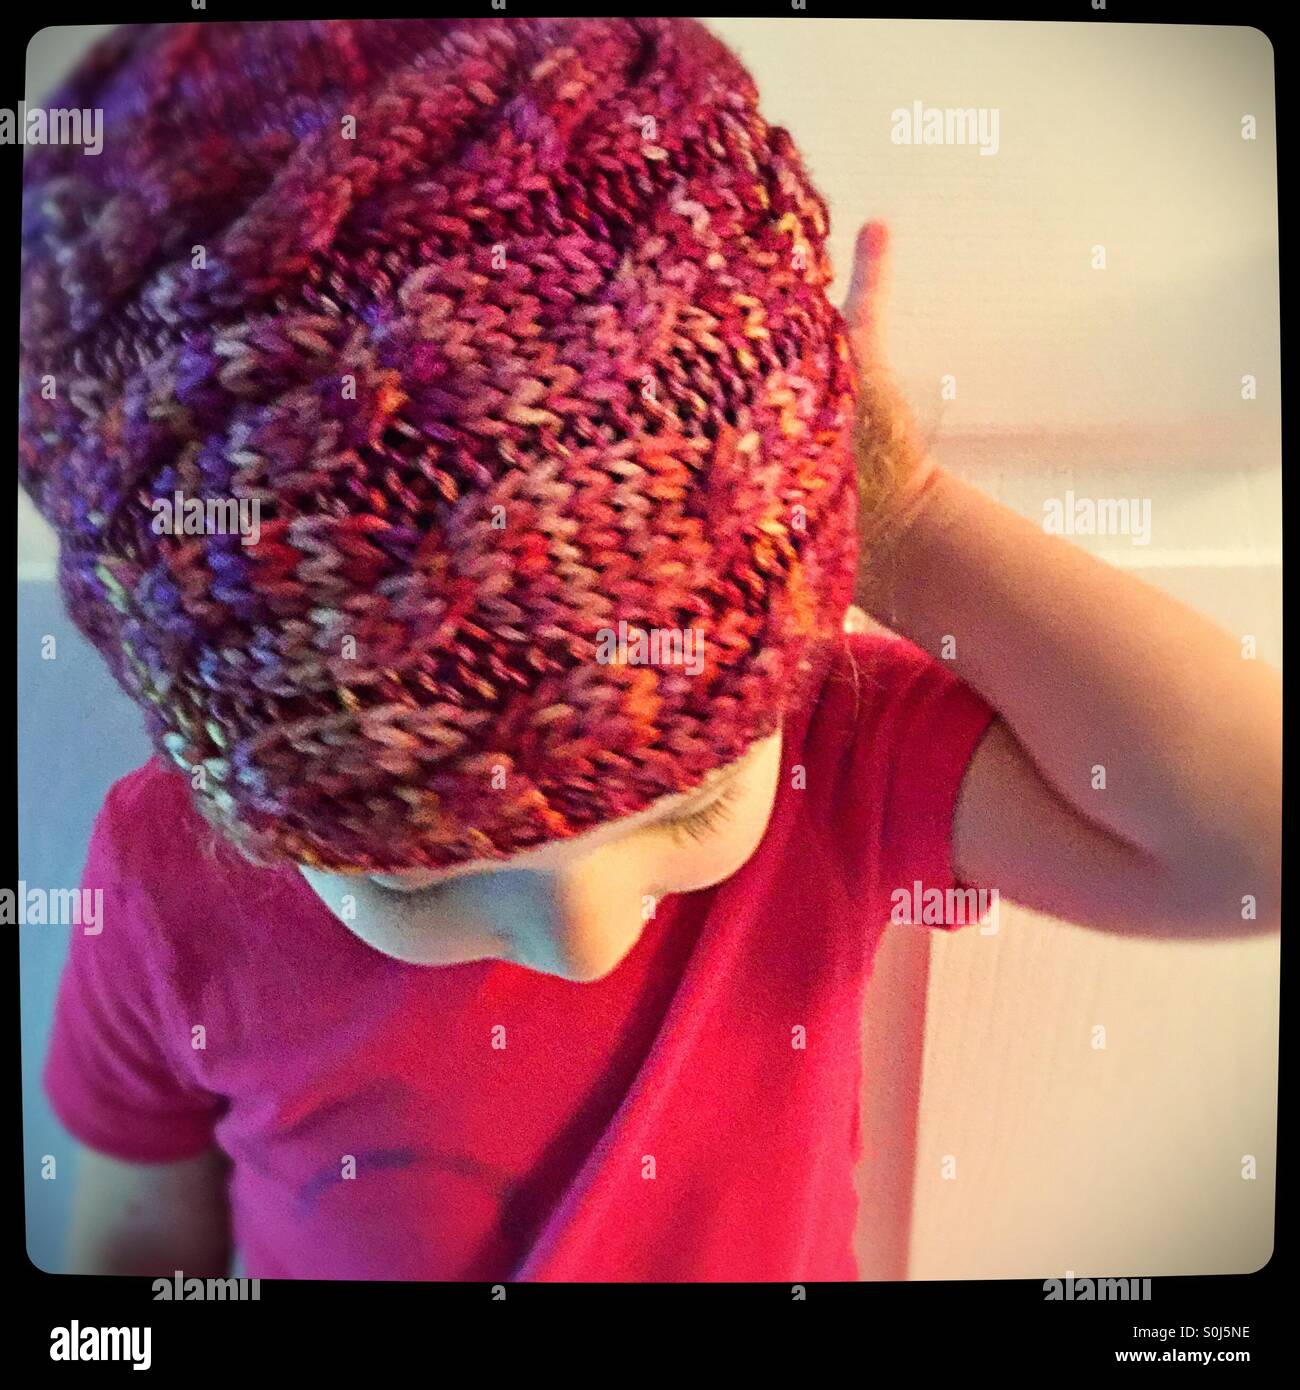 Toddler in a knit cap - Stock Image